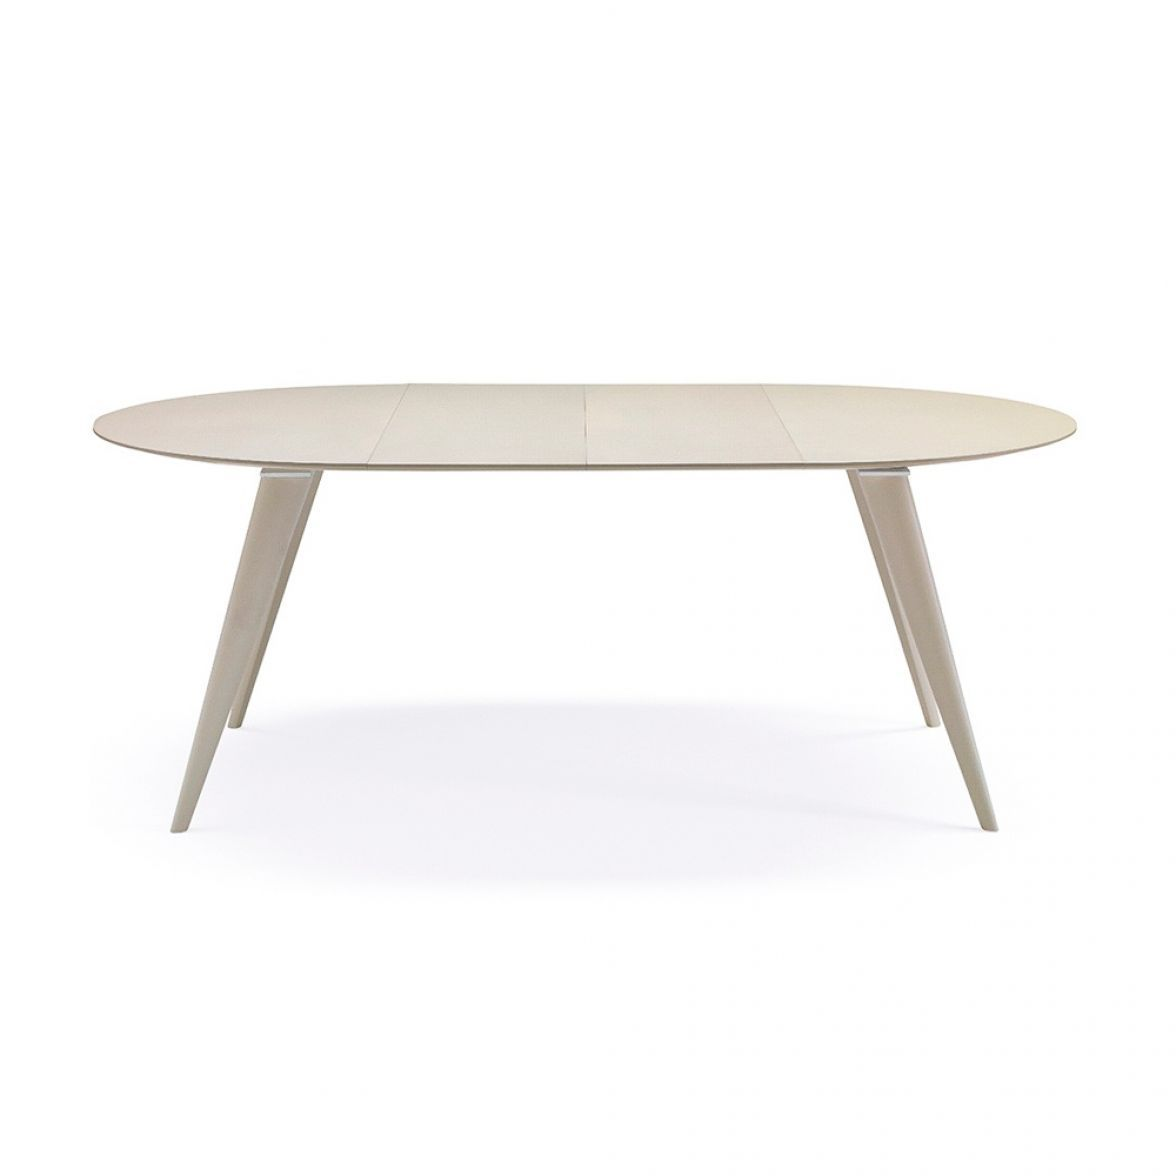 Elegance dining table  фото цена